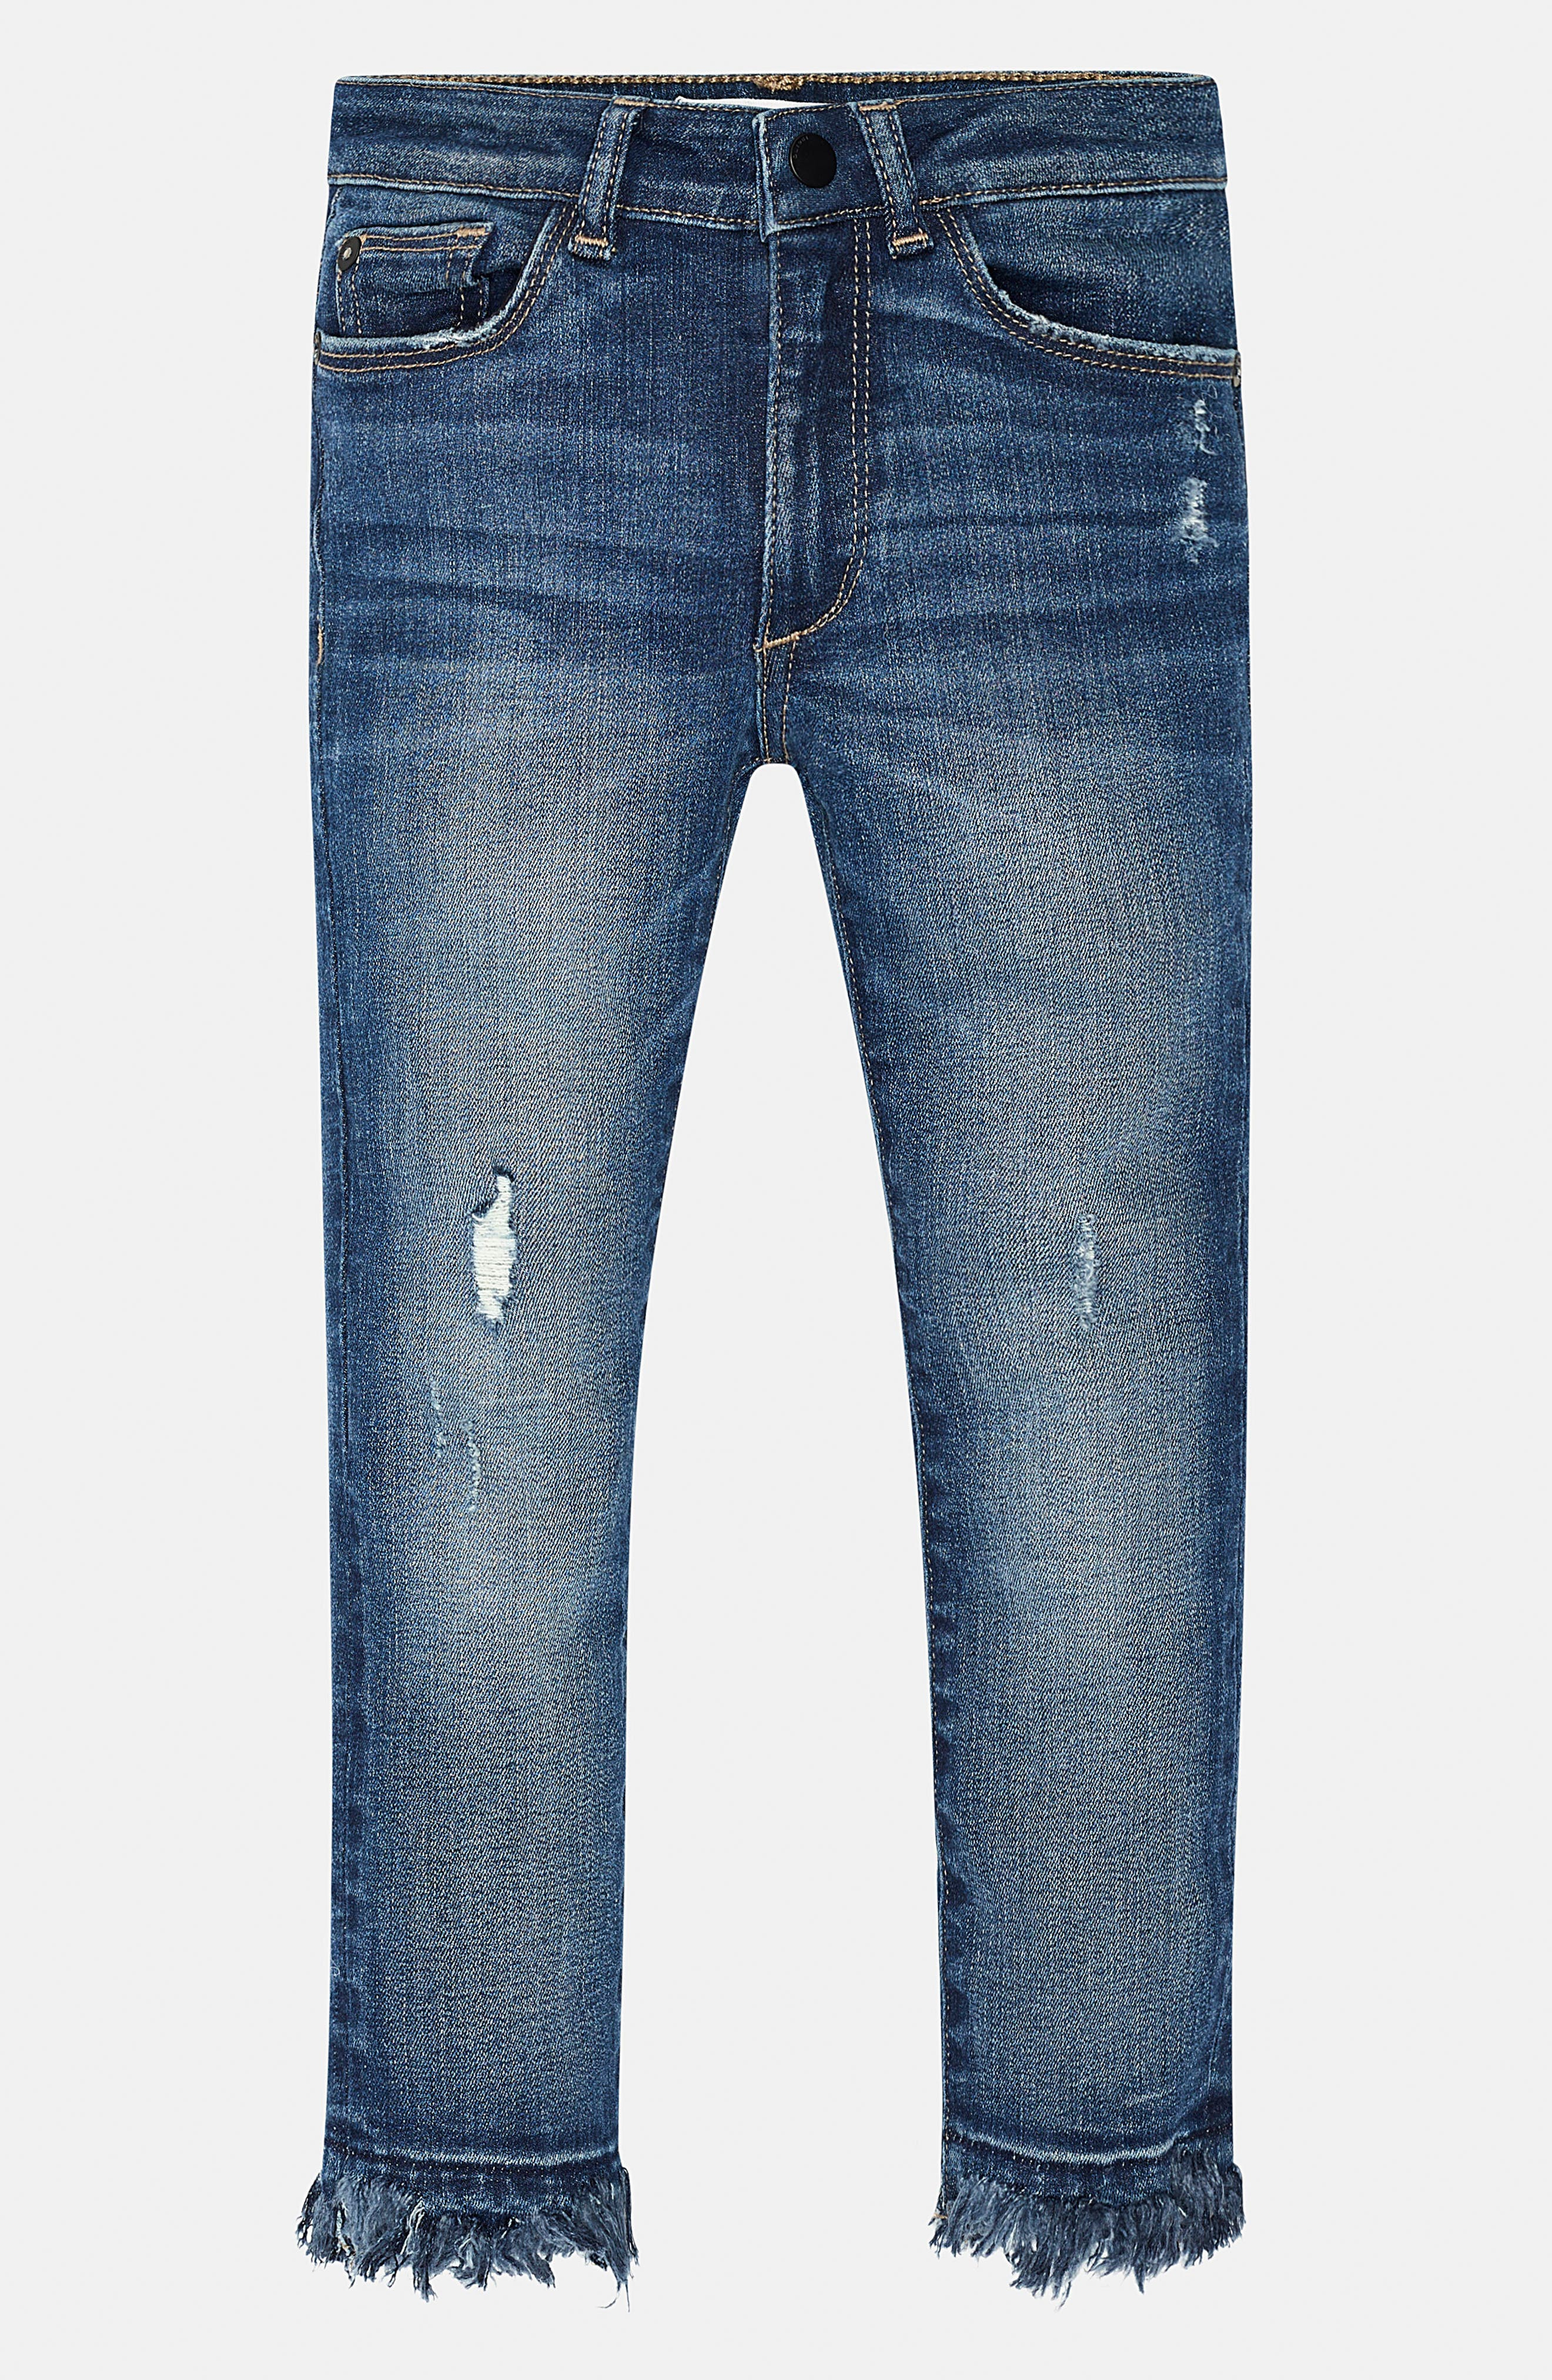 DL1961 Chloe Distressed Skinny Jeans (Toddler Girls & Little Girls)